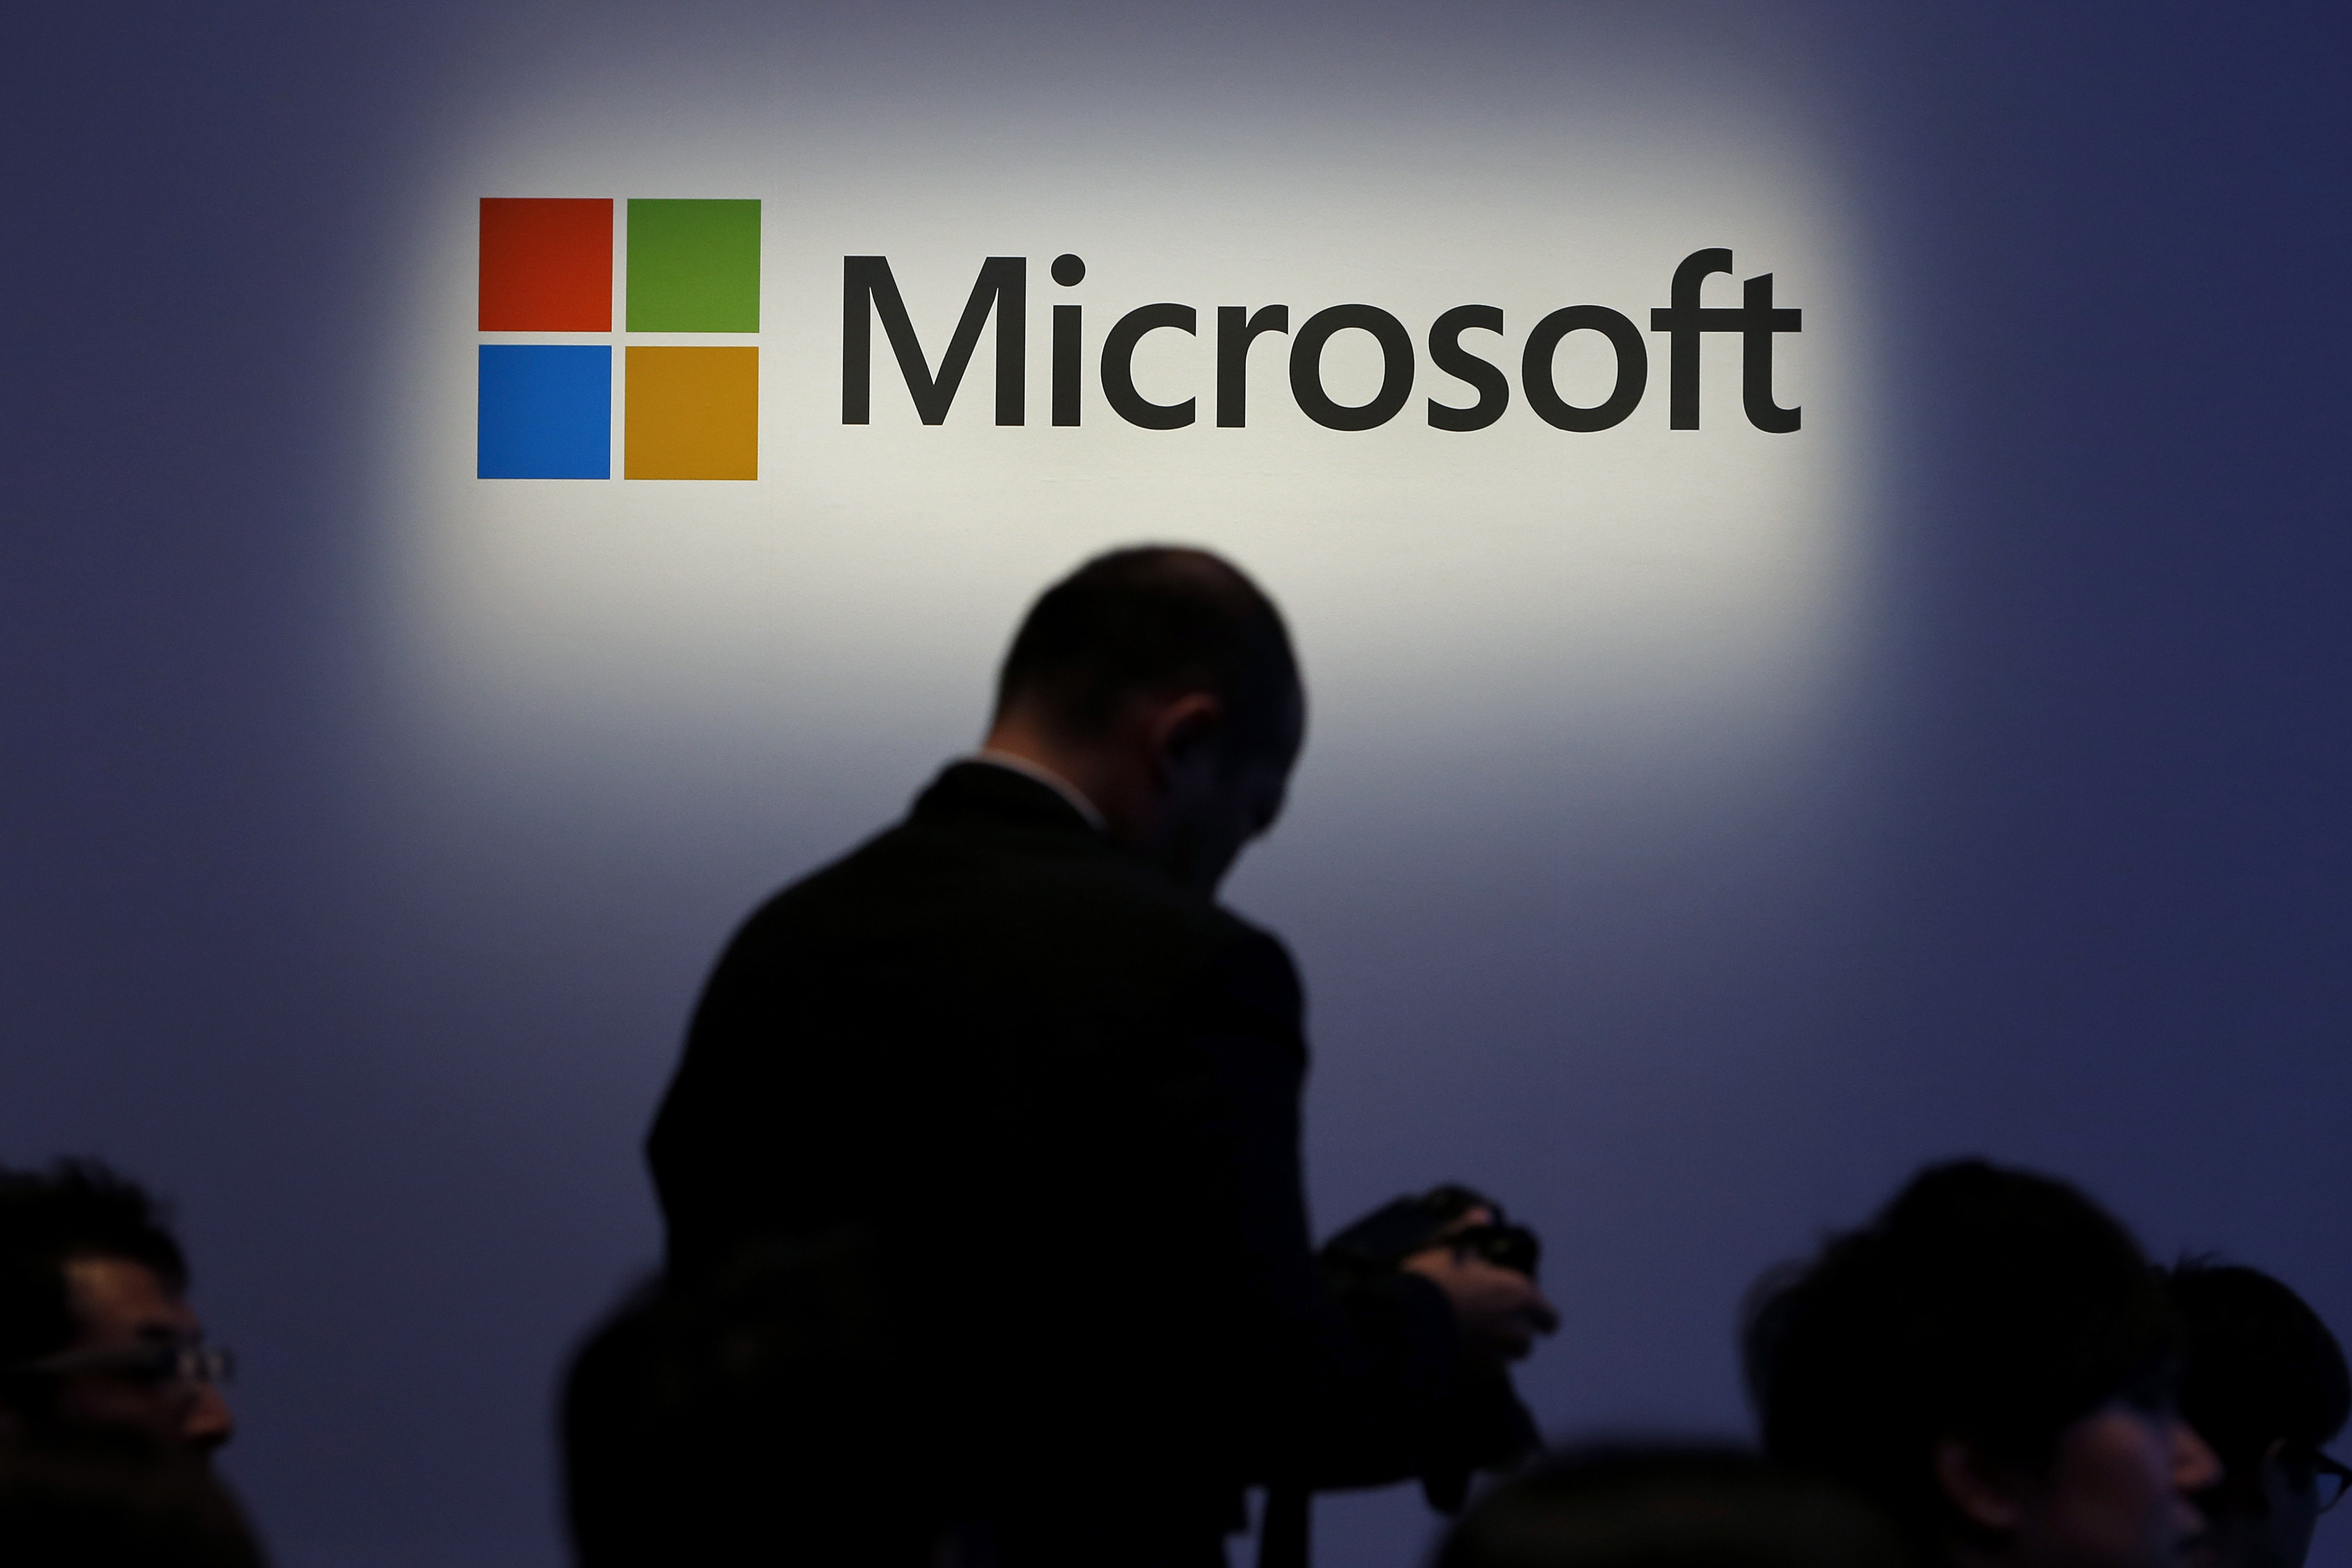 The Microsoft Corp. logo at a launch event for the company's Windows 8.1 operating system in Tokyo, on Oct. 18, 2013.